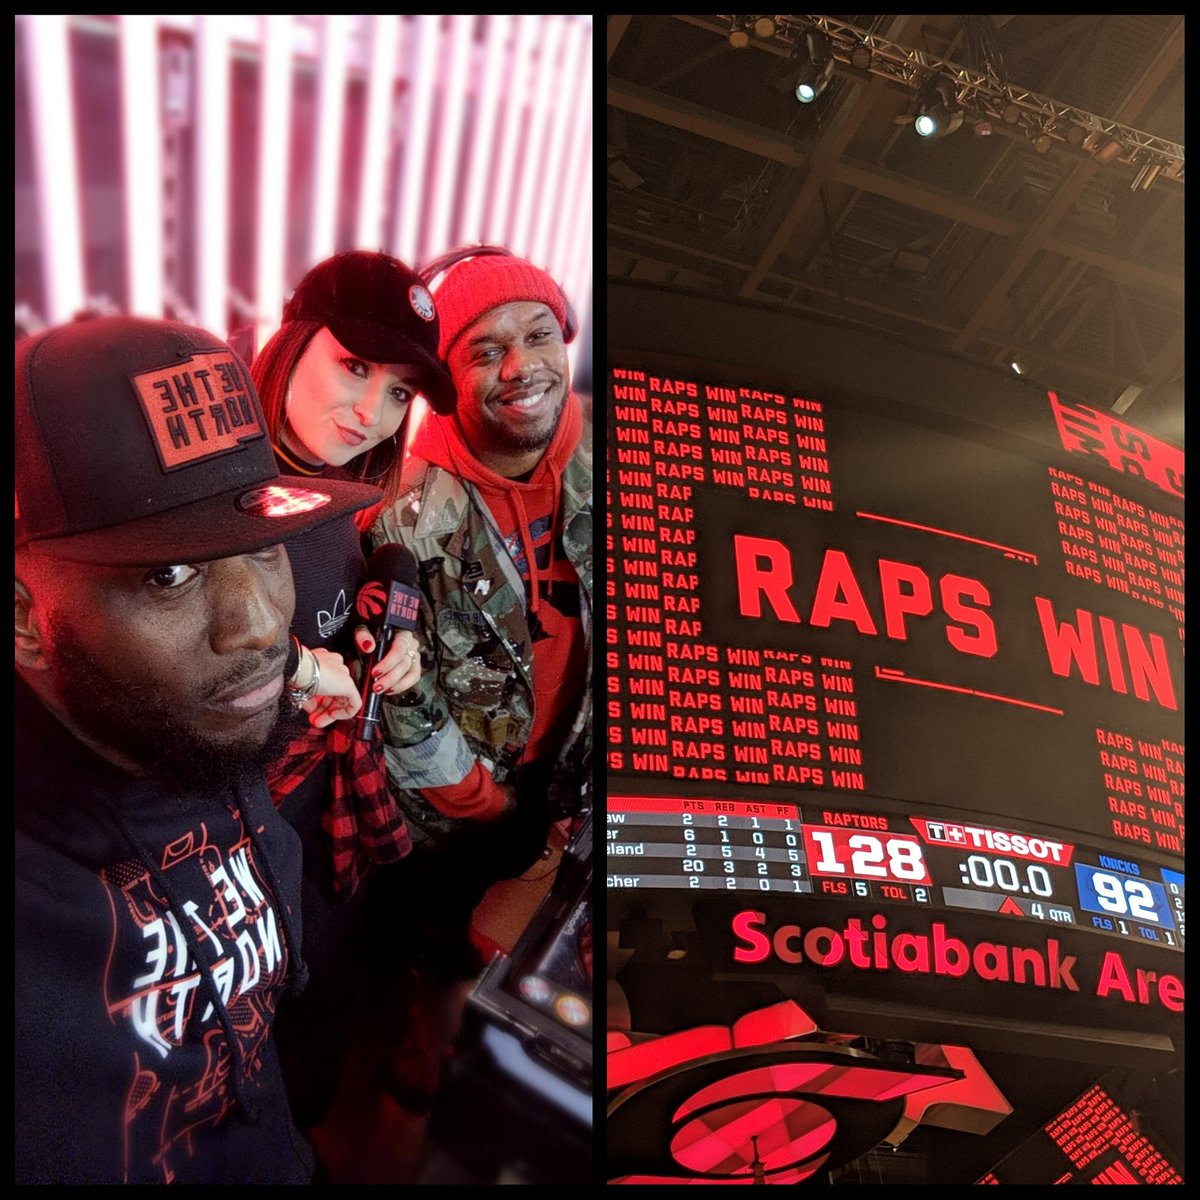 The band back together #wreckingcrew @matterofkat @4korners @strizzzy 🙌🏿 @raptors bounce back and get their 50th WIN! 128-92 over #Knicks @kyle_lowry7 says he will be good. Not to worry! #raptors next Home game Friday vs #okc   #WeTheNorth #toronto #the6ix #GoRaptors #lovemycity